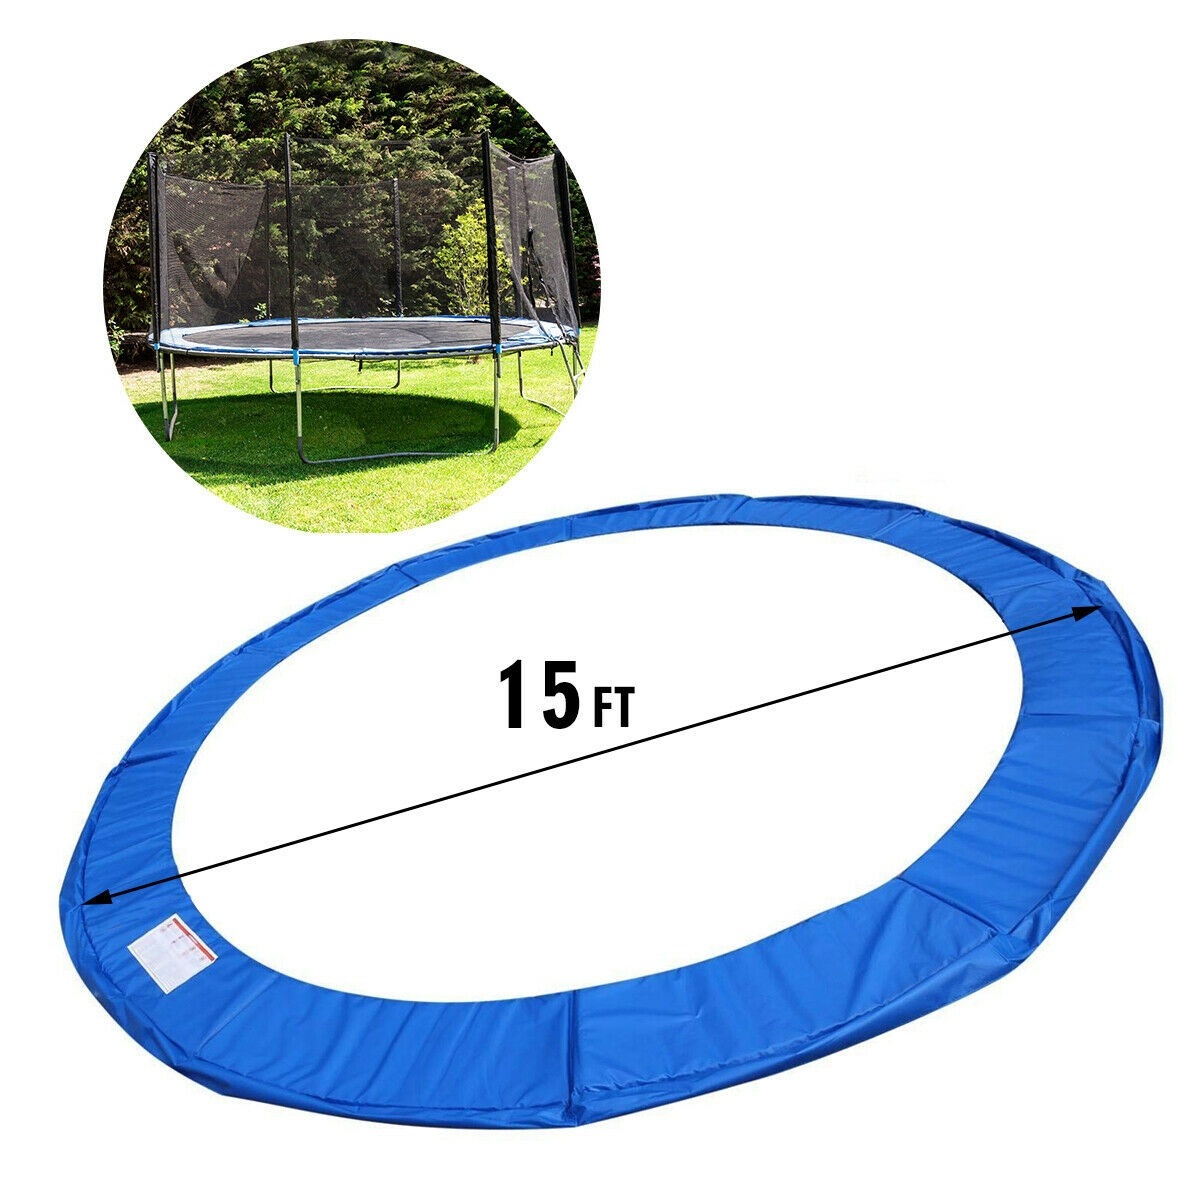 Blue Safety Round Spring Pad Replacement Cover for 15' Trampoline